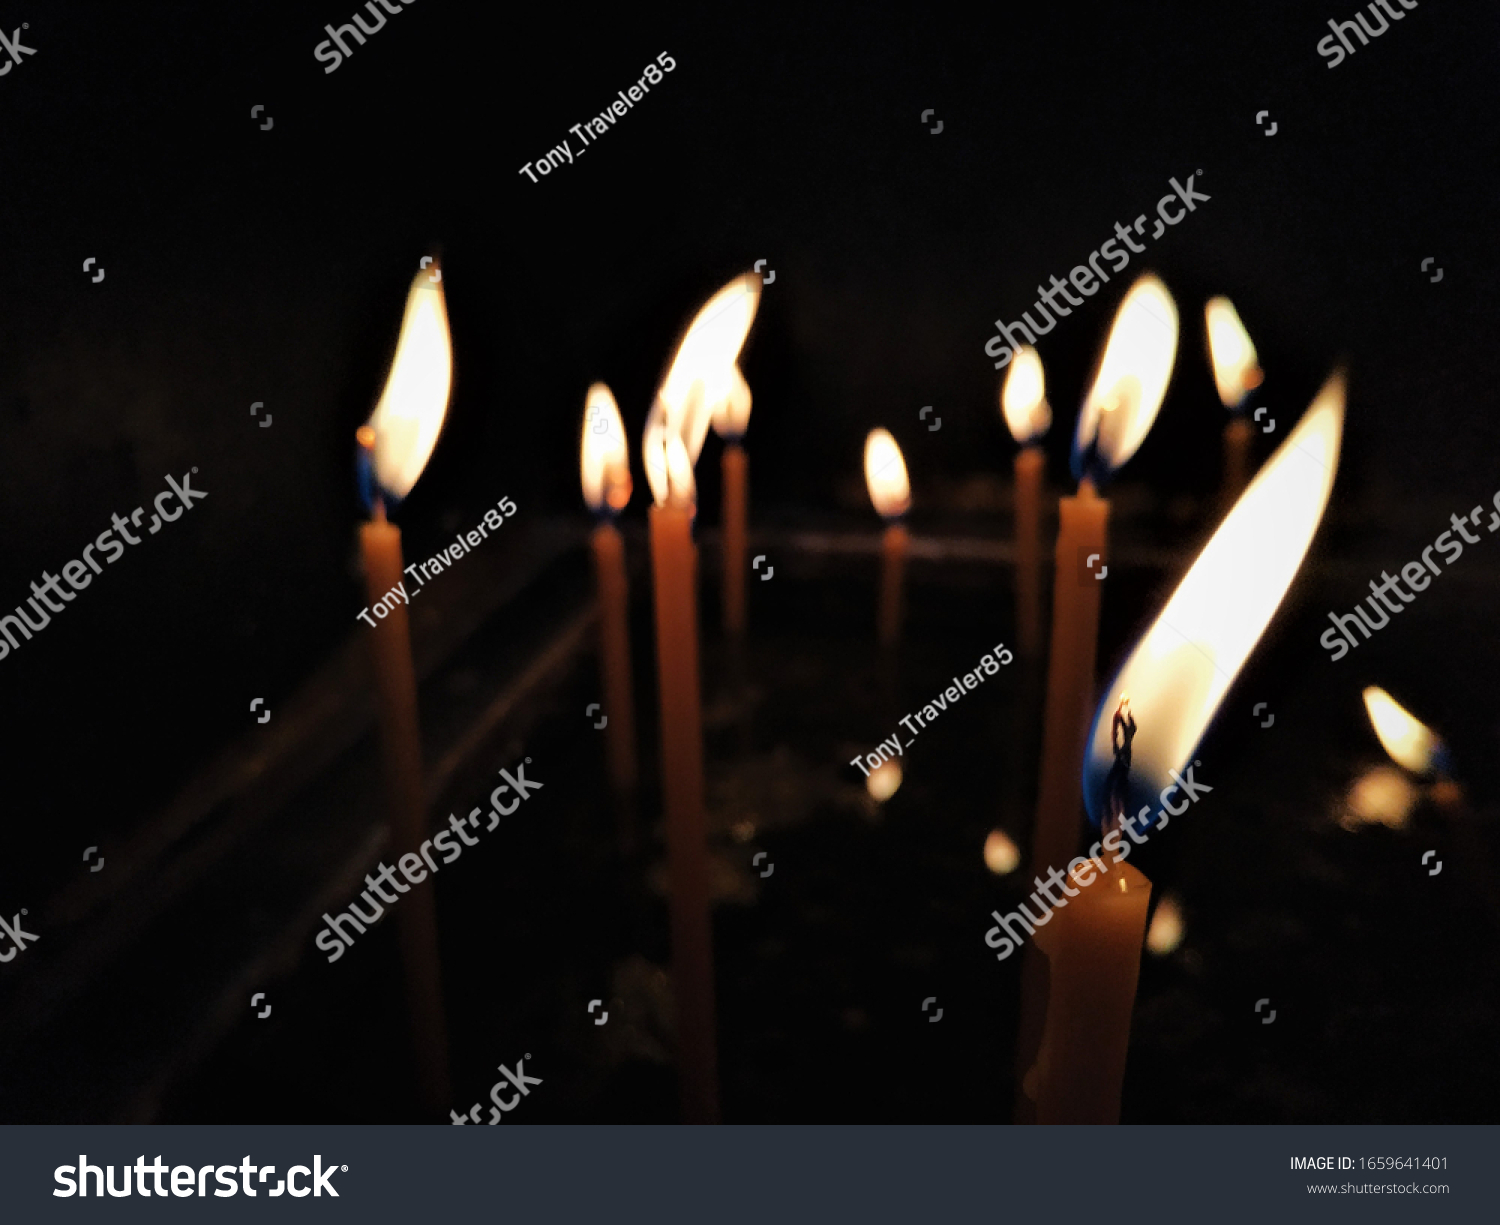 Candles on a dark background, candles flame at night closeup, cozy interior.